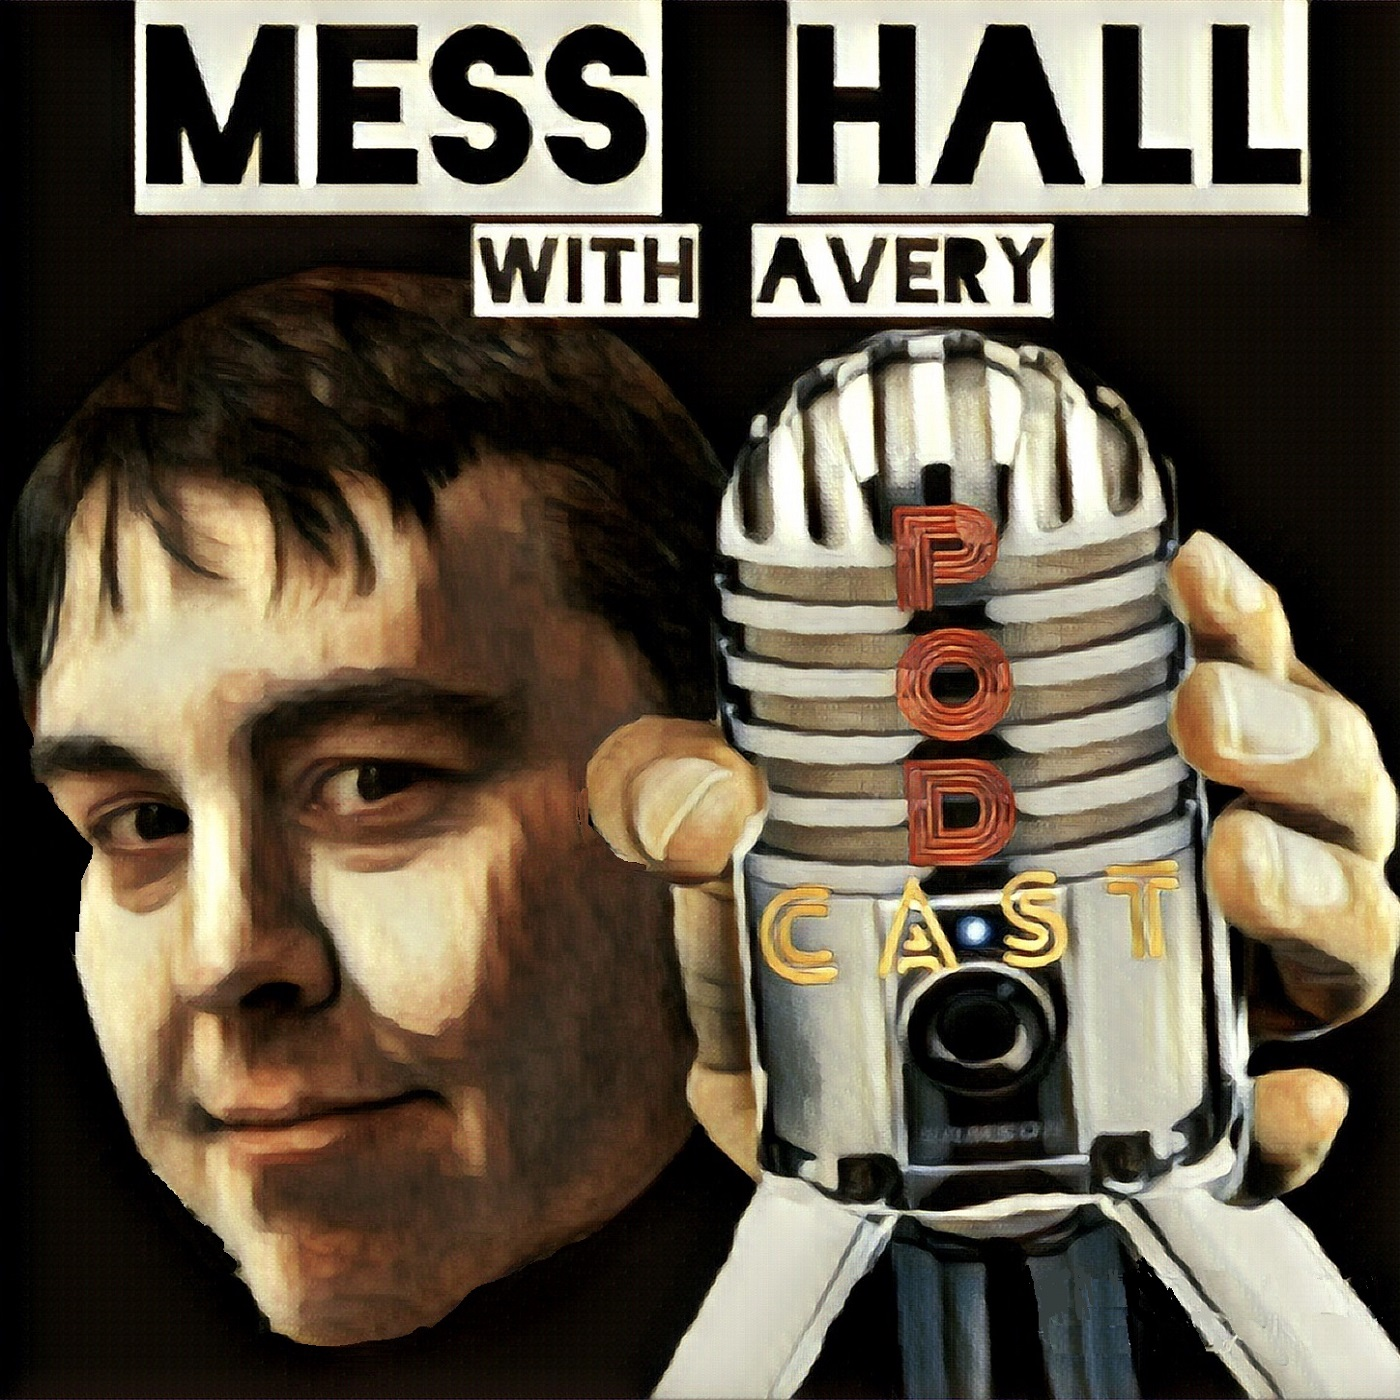 messhallpodcast